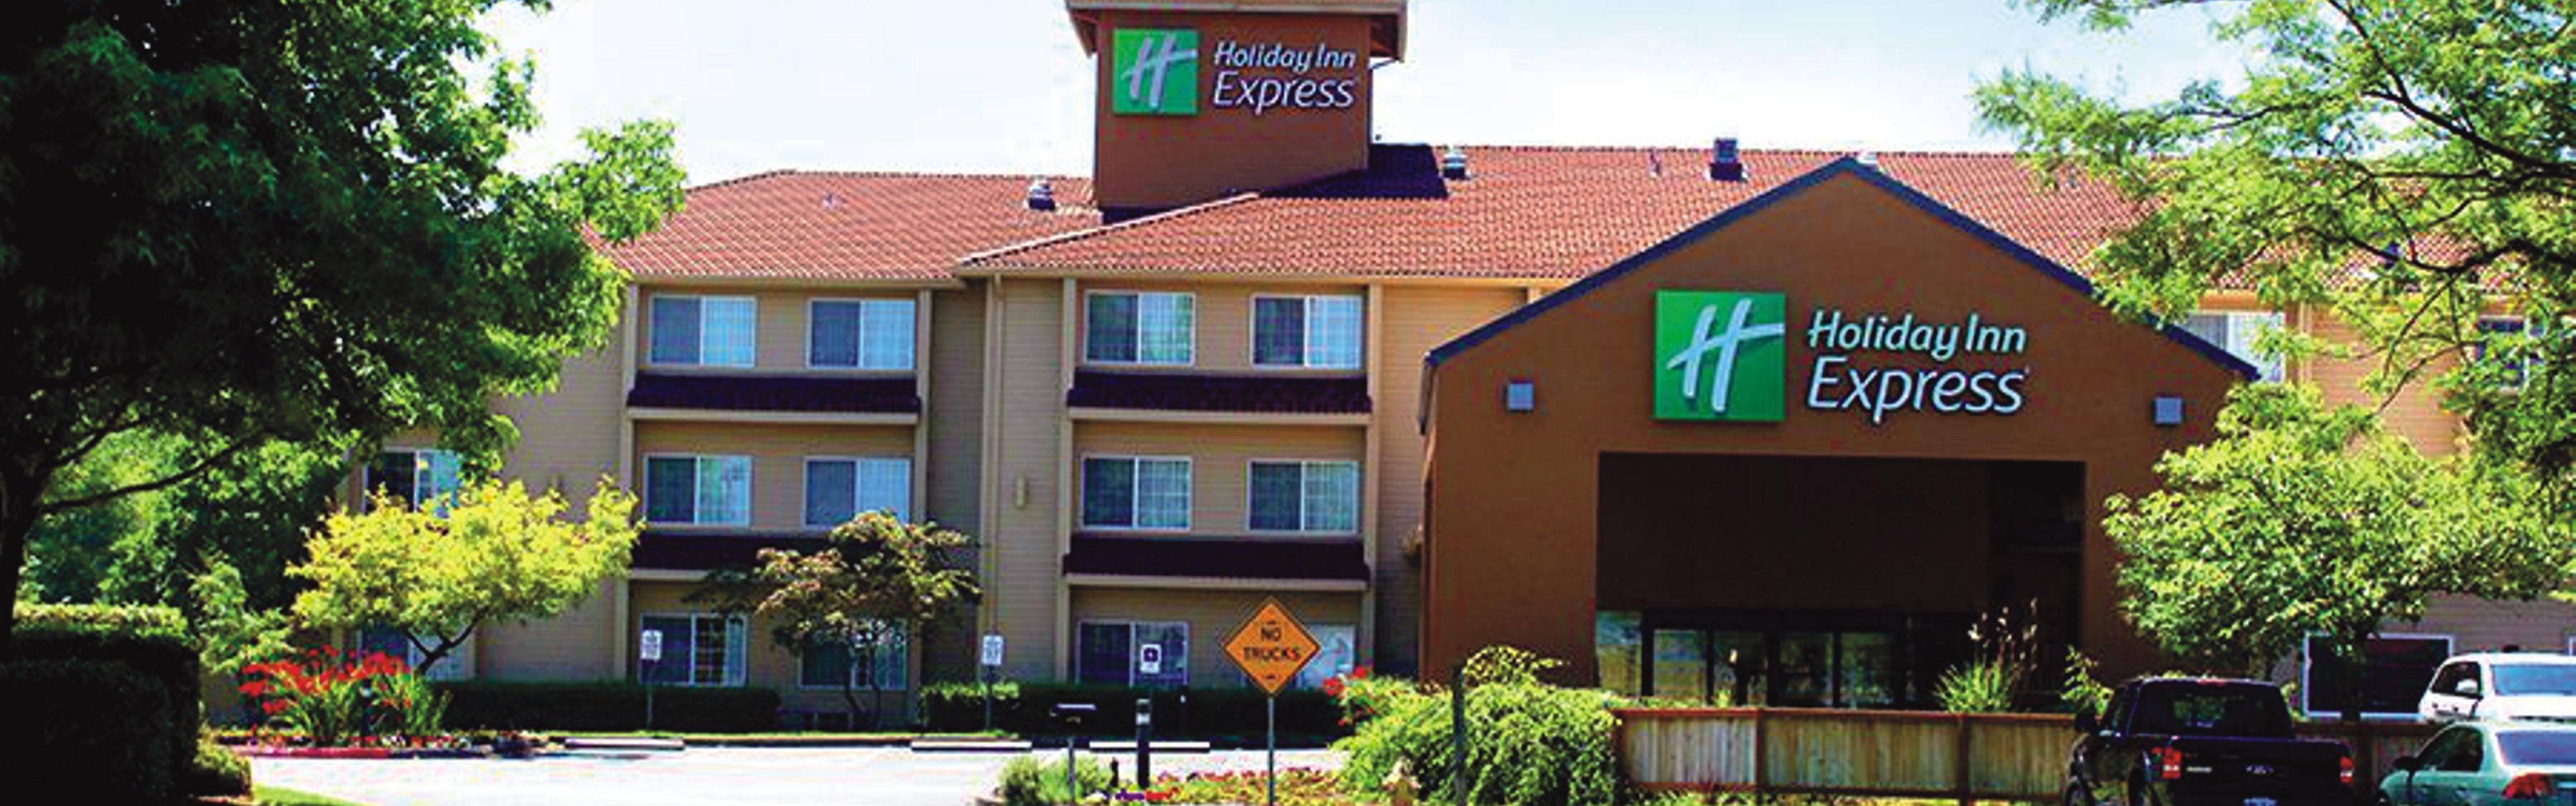 Holiday Inn Express Portland East - Troutdale image 0